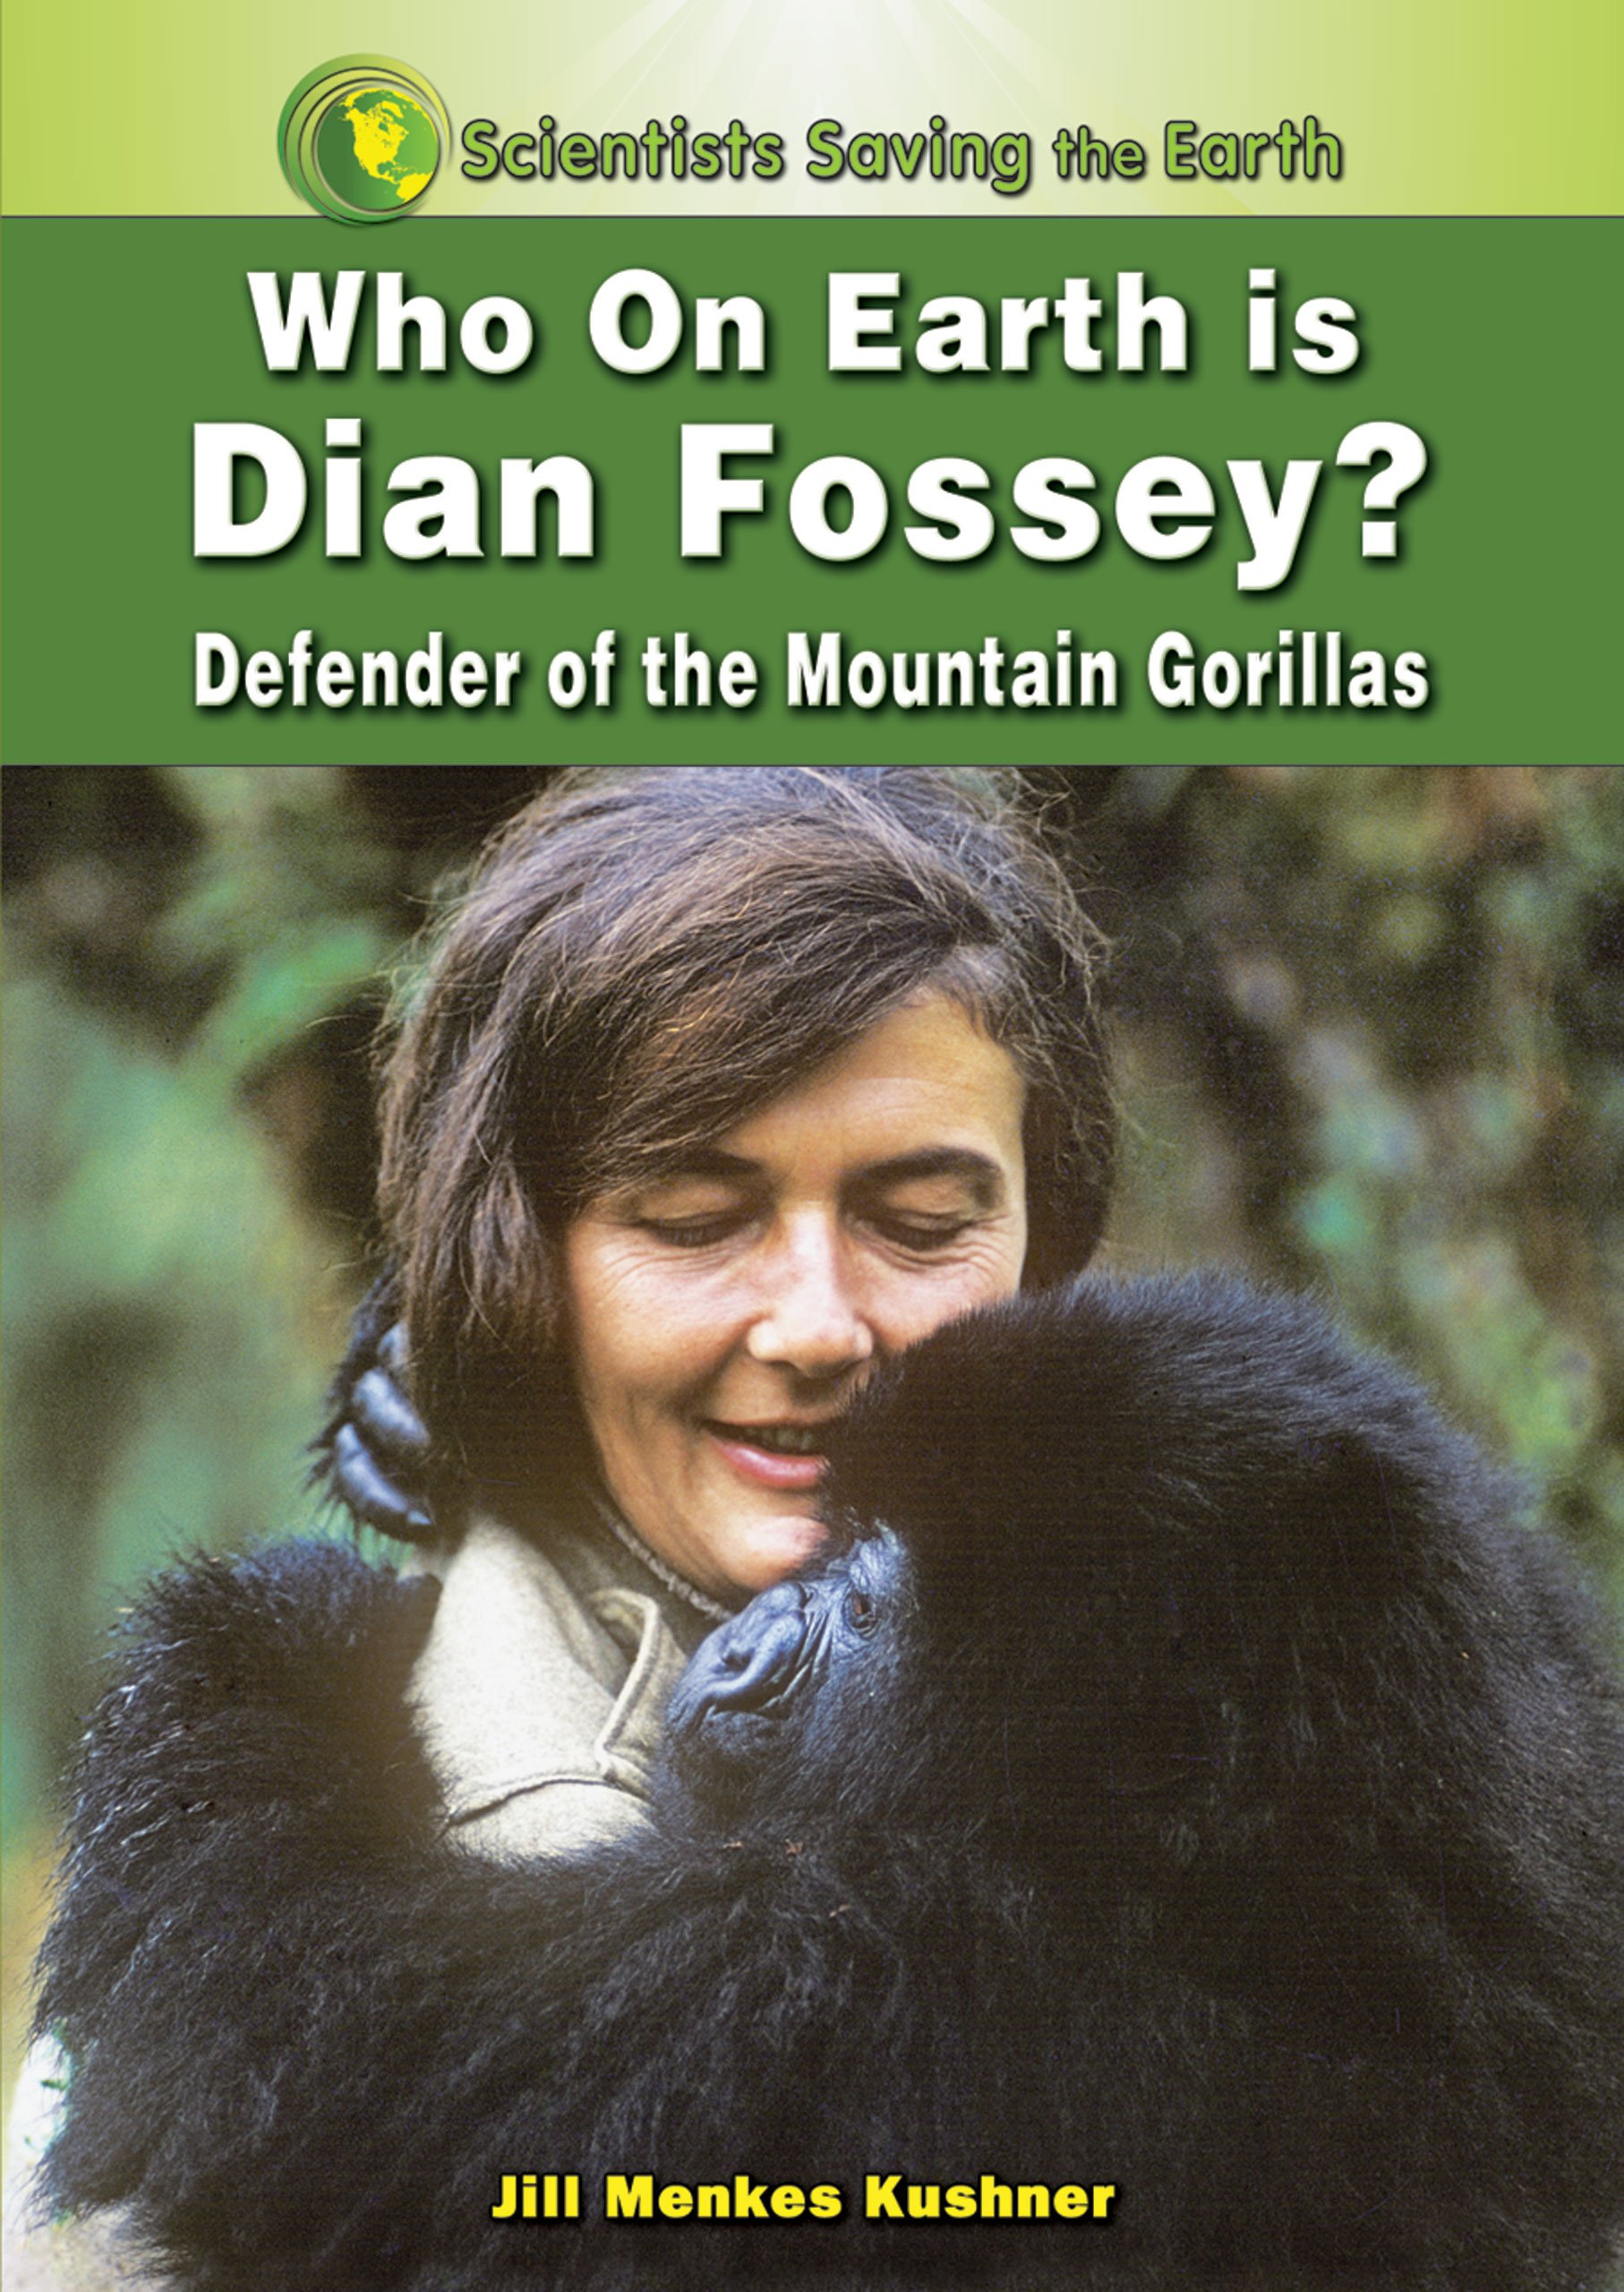 Who on Earth is Dian Fossey?: Defender of the Mountain Gorillas (Scientists Saving the Earth) ePub fb2 book